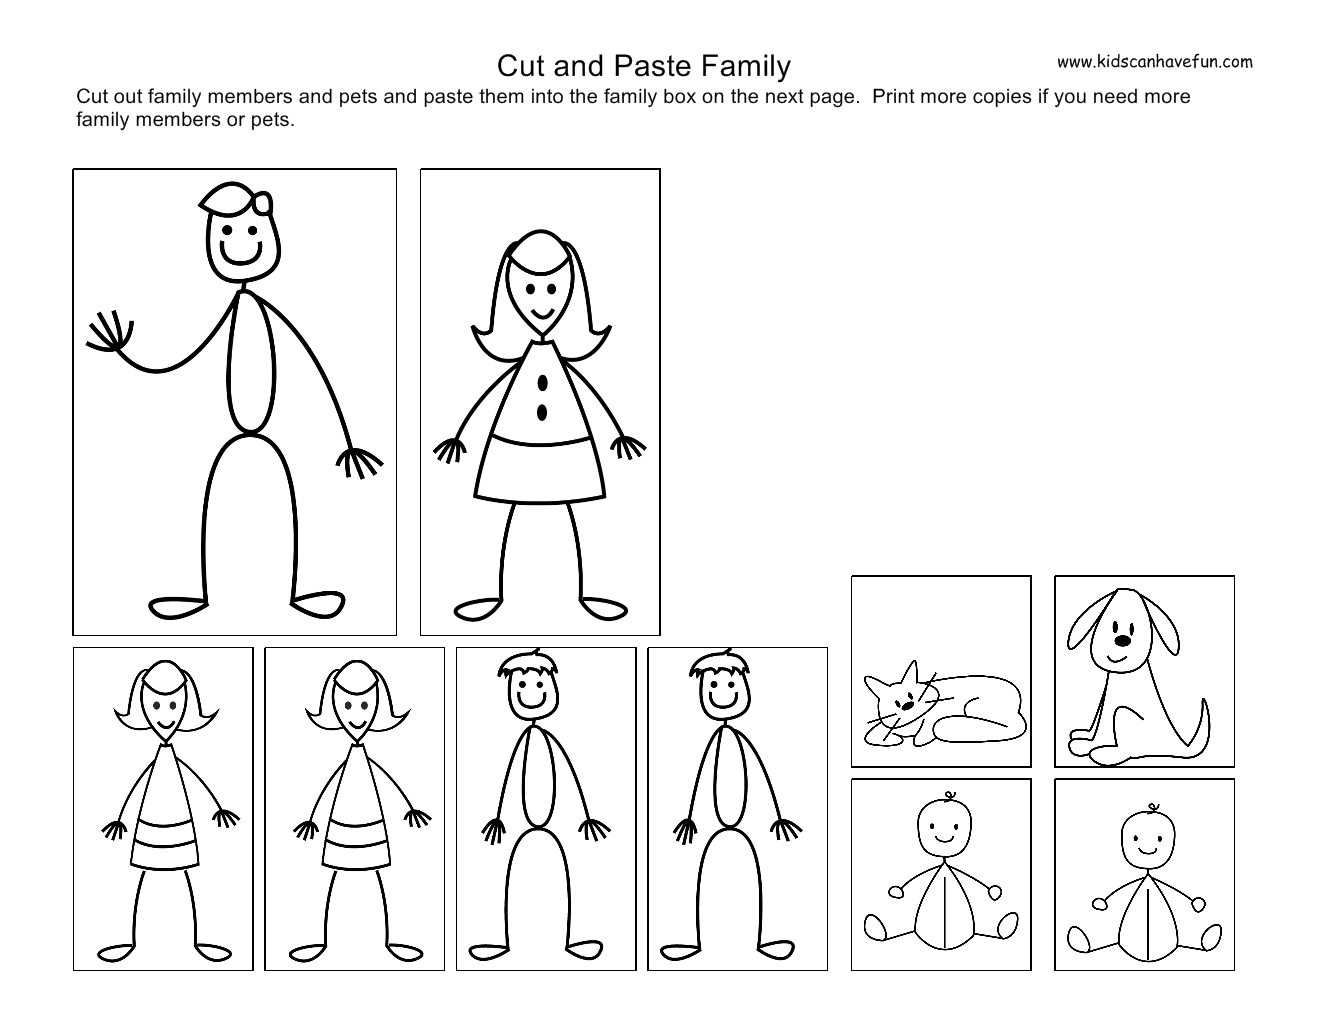 Worksheet Preschool Cut And Paste Worksheets preschool my family and cut paste on pinterest help the kids learn about school before their first day or when returning back to with worksheets